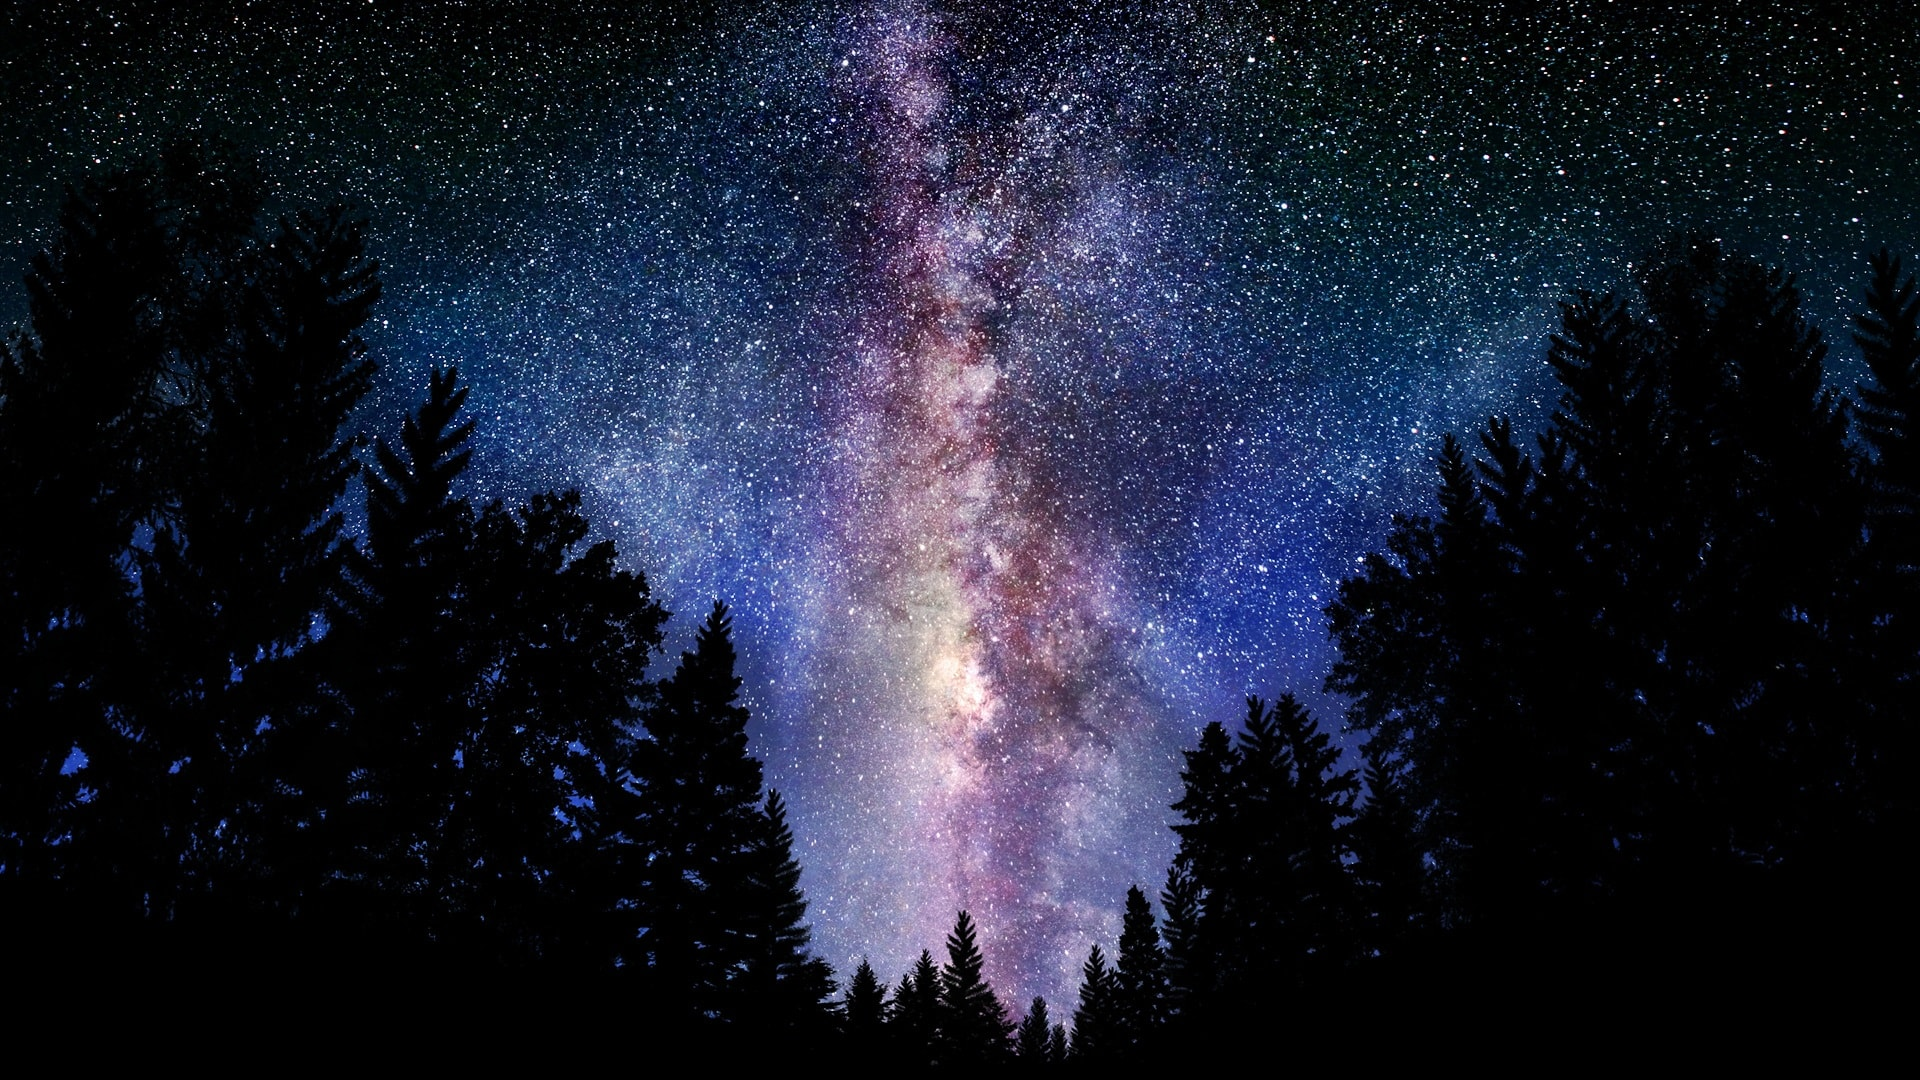 Milky Way Widescreen for desktop